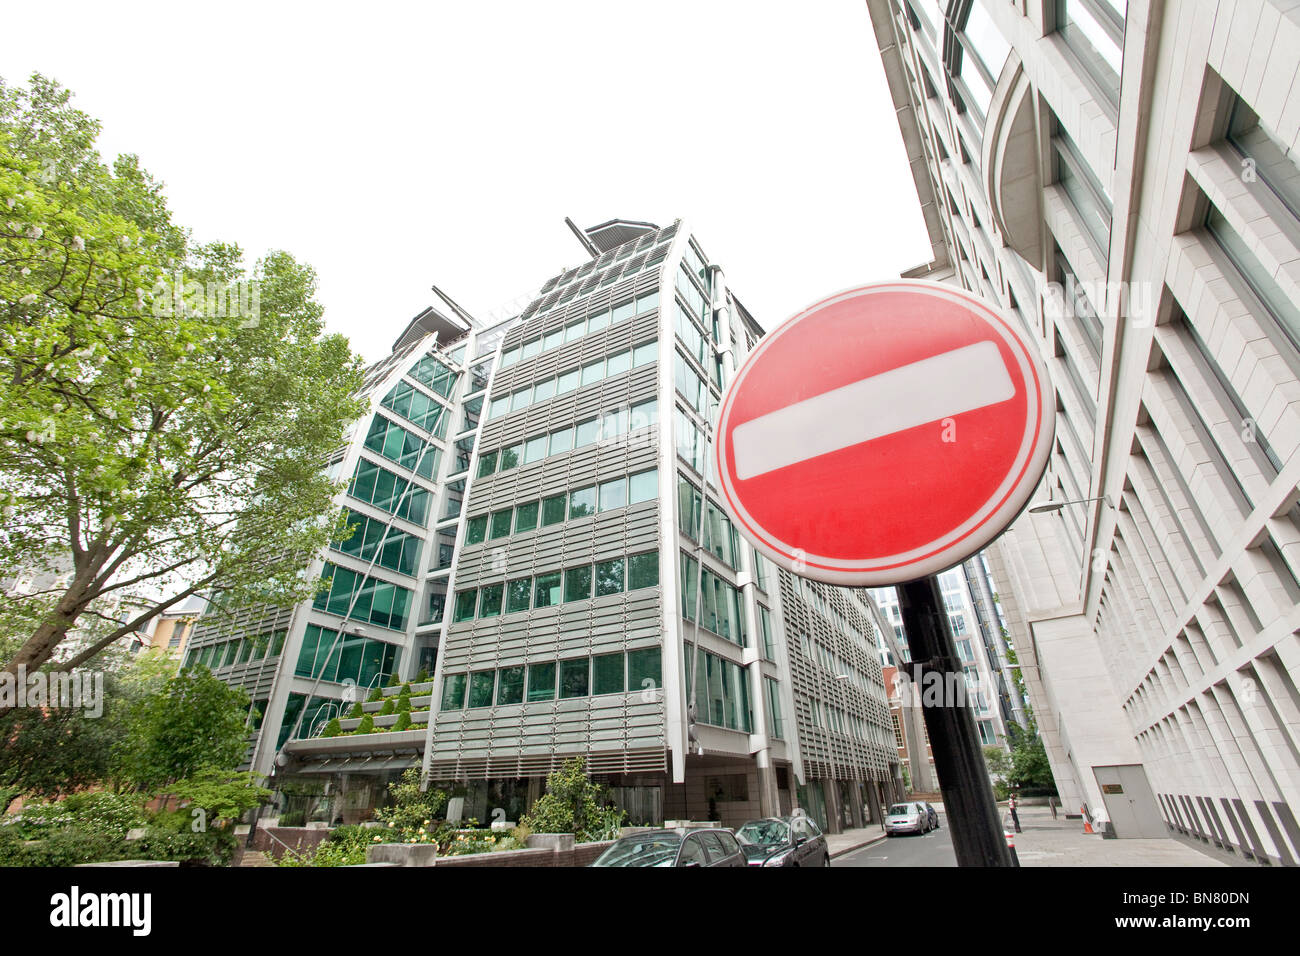 The Headquarters of Lloyds Banking Group, formerly Lloyds TSB Group, London - Stock Image